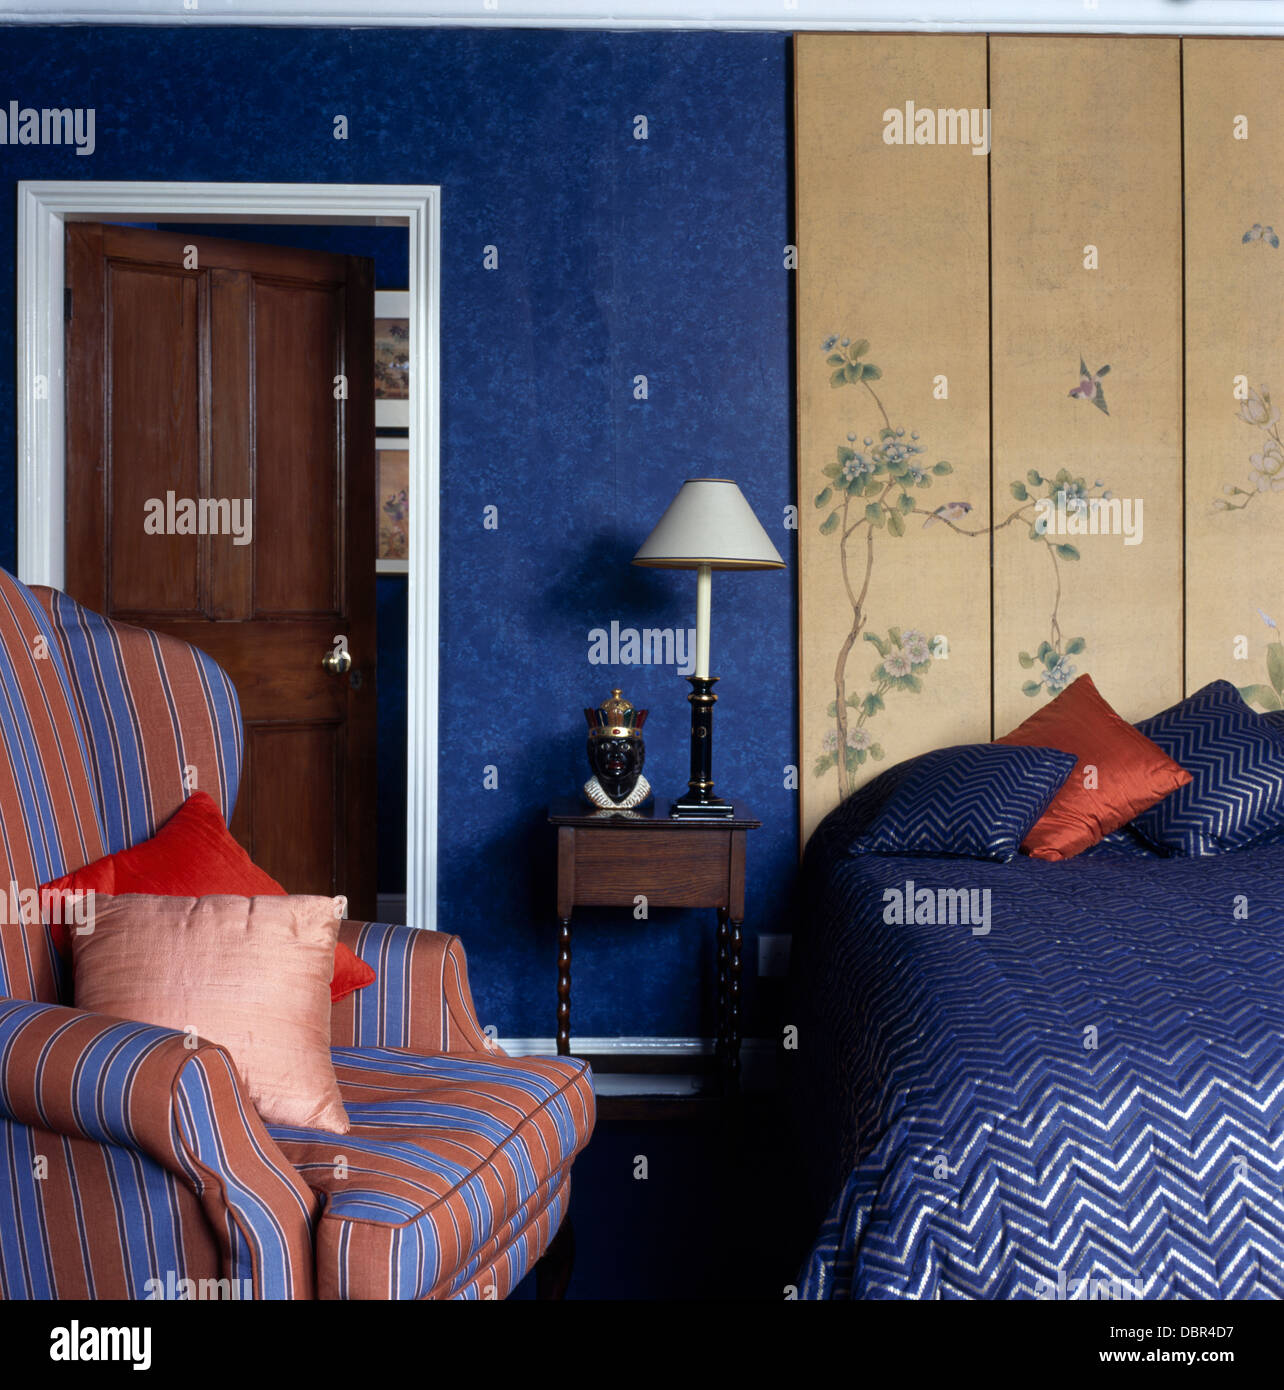 Holzvertäfelung Hinter Bett Paneling Bed Stockfotos Paneling Bed Bilder Alamy